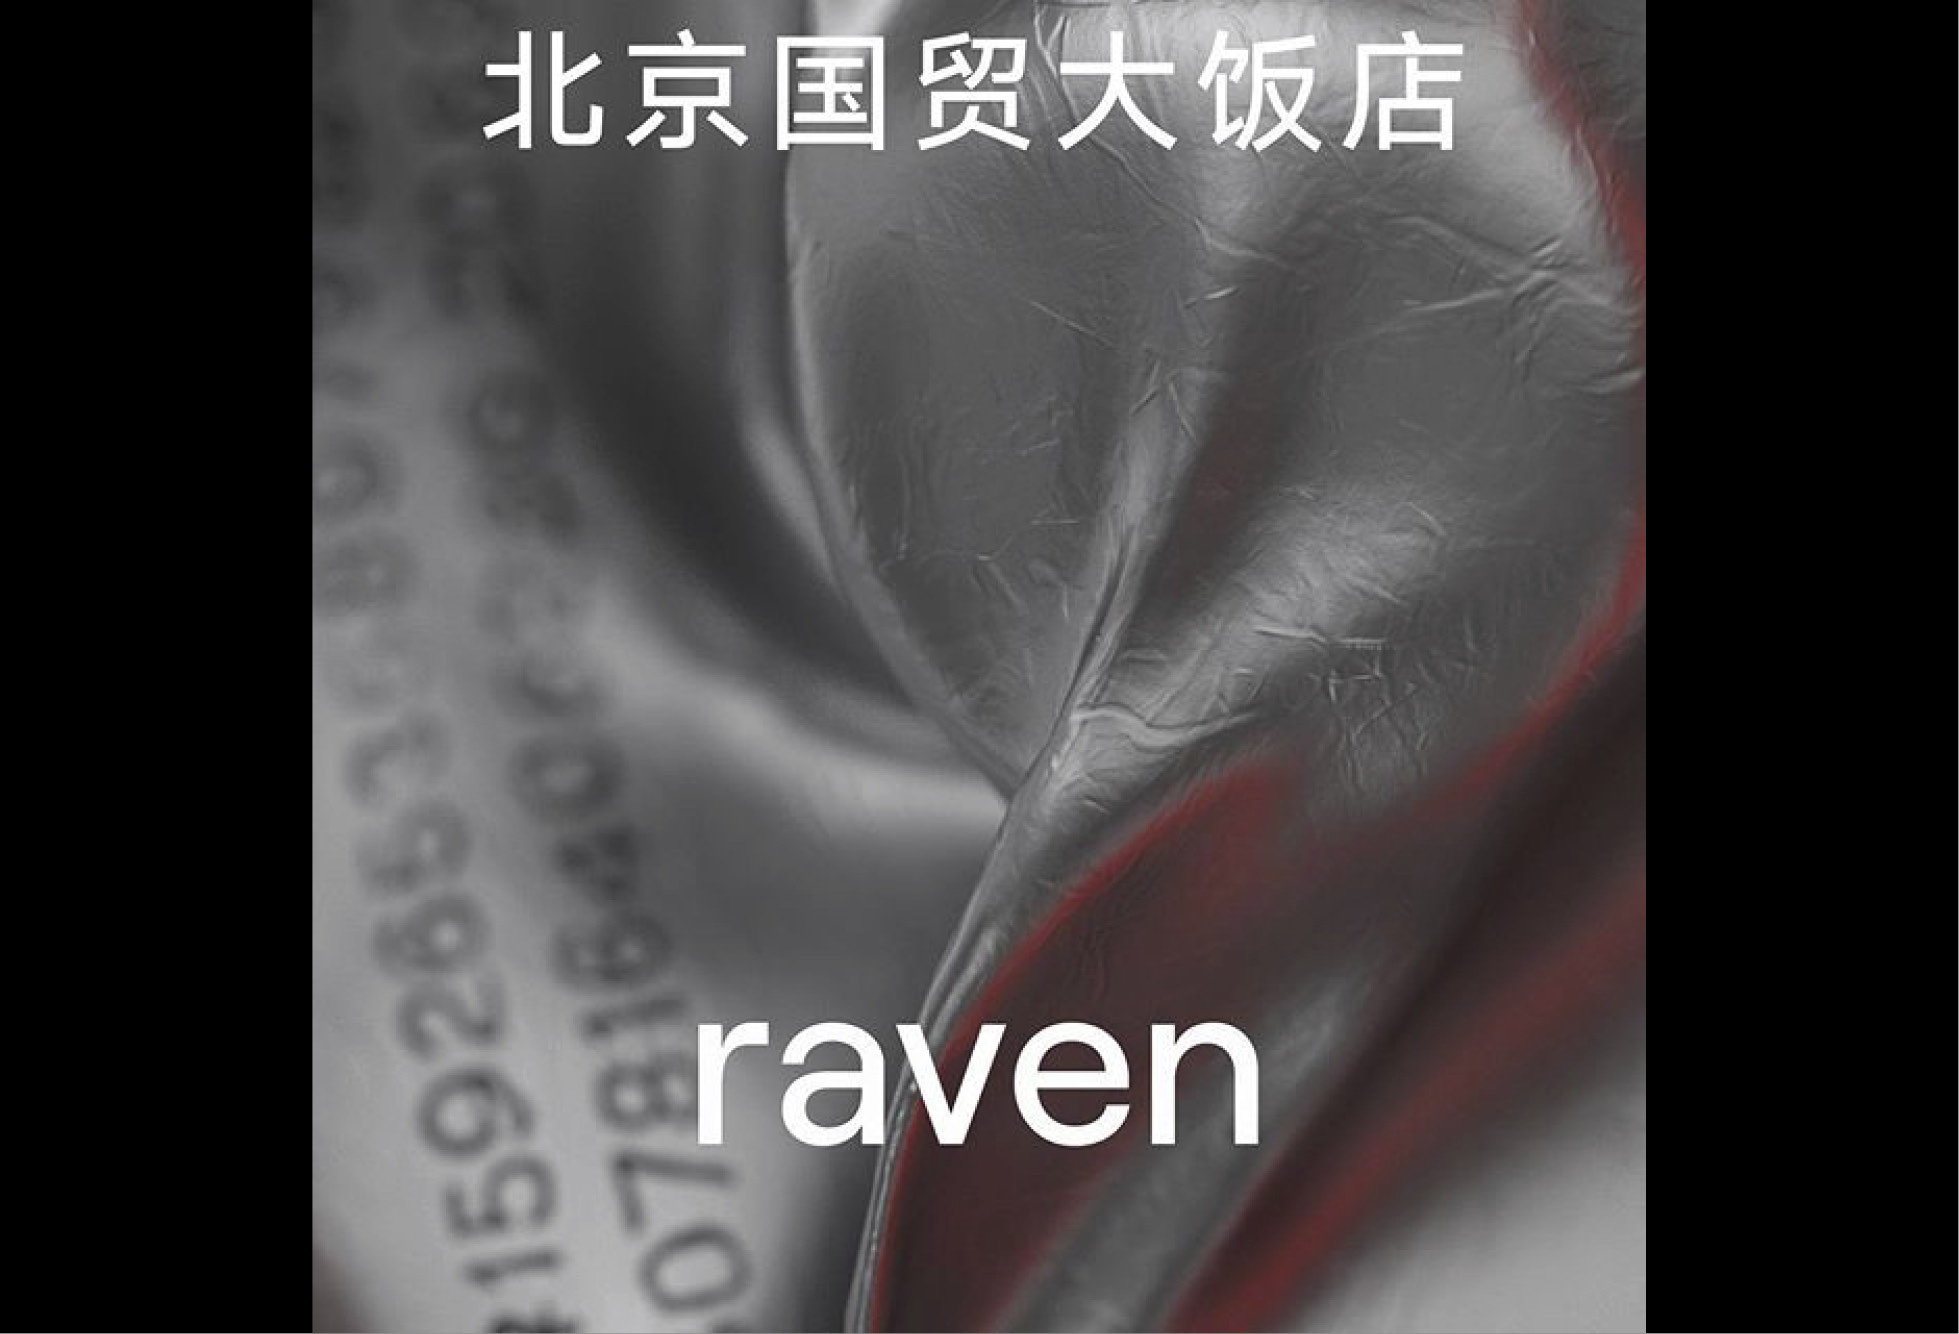 Fonts in use: Raven Tech (design by Twelve, product design by Raven and Teenage Engineering)